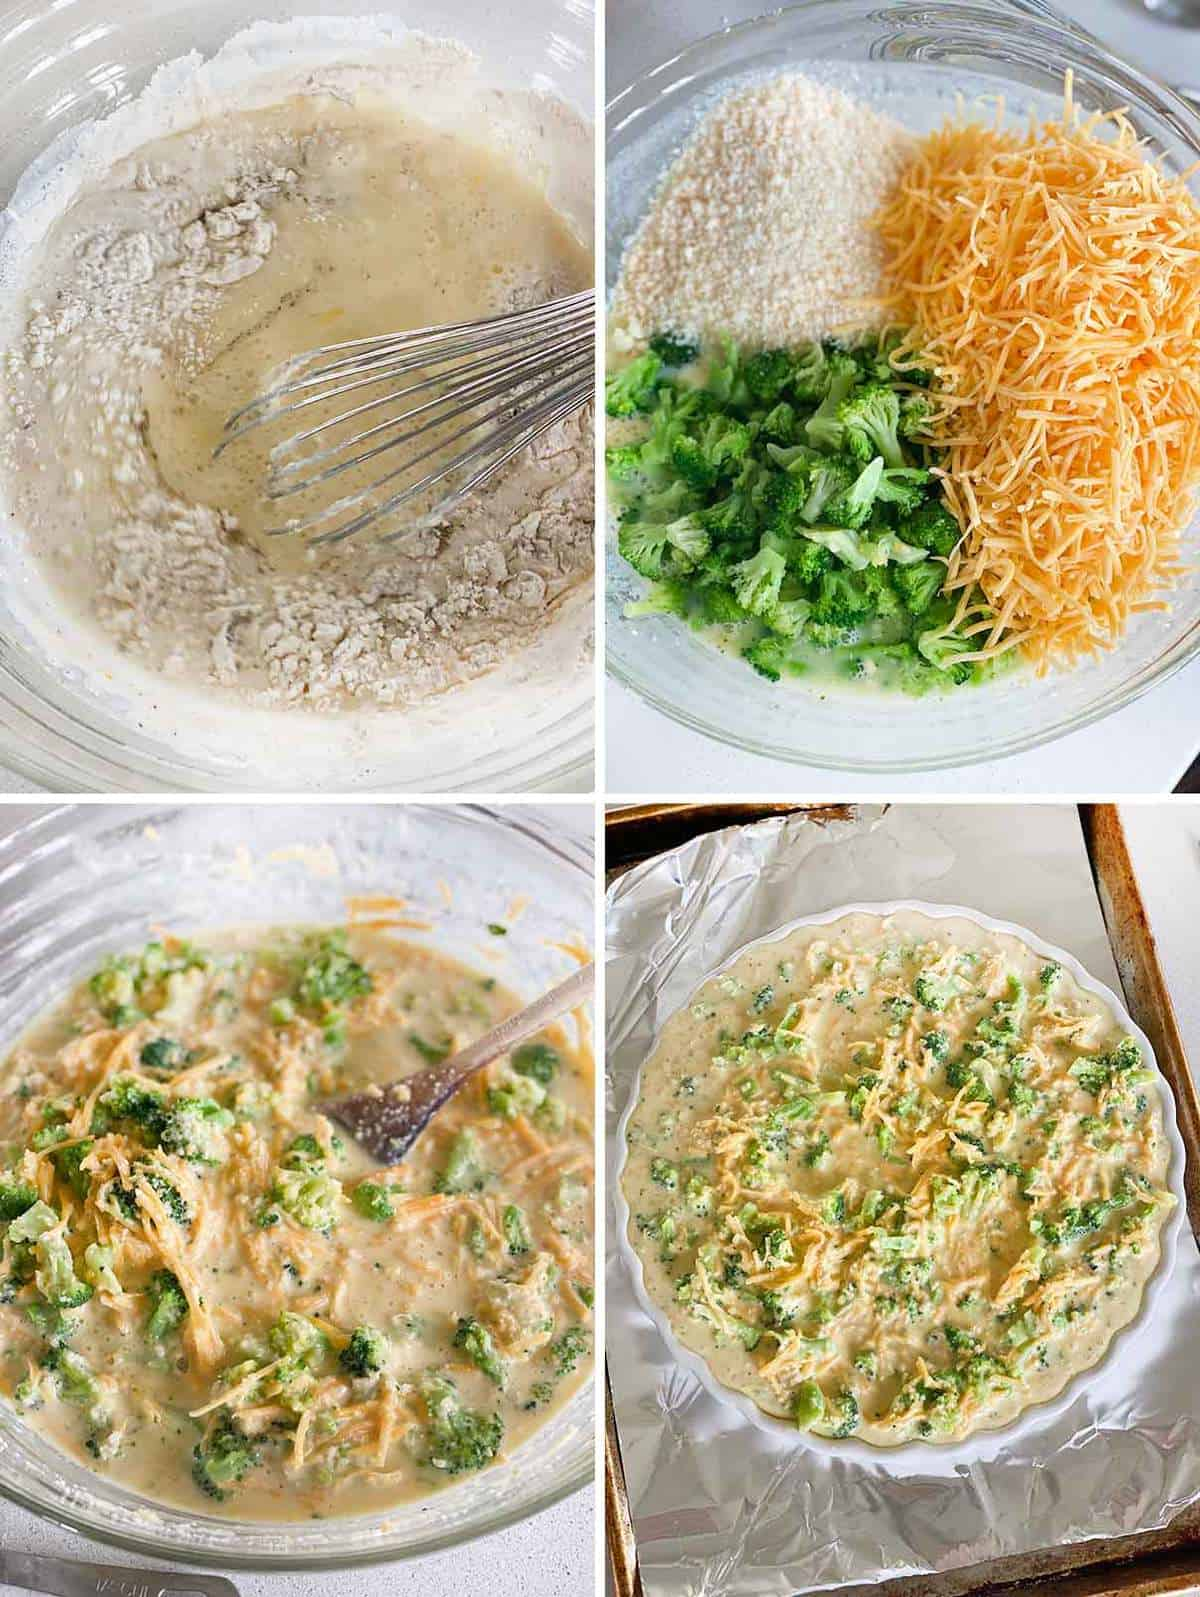 Process collage showing mixing the batter for crustless broccoli cheddar quiche and pouring into quiche dish.